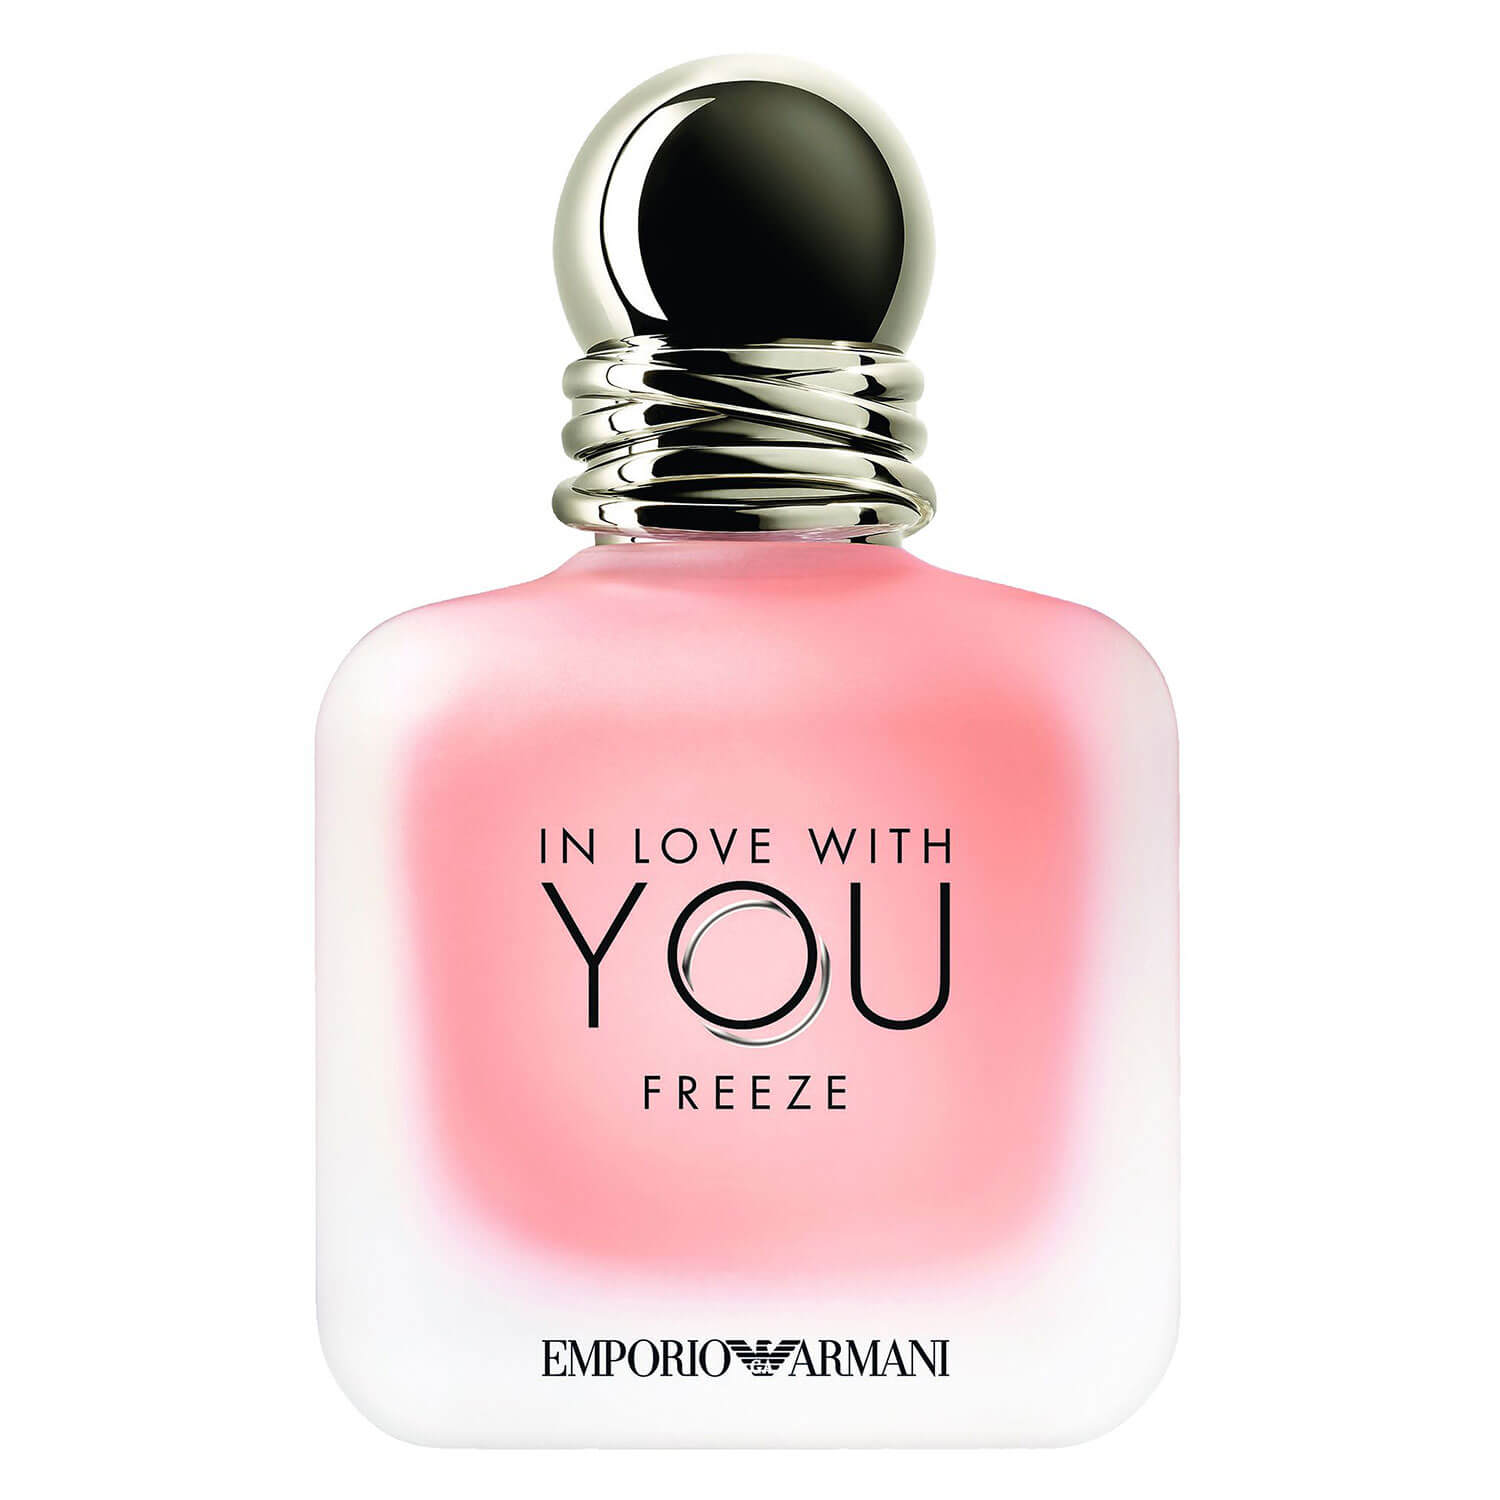 Emporio Armani - In Love With You Freeze Eau de Parfum